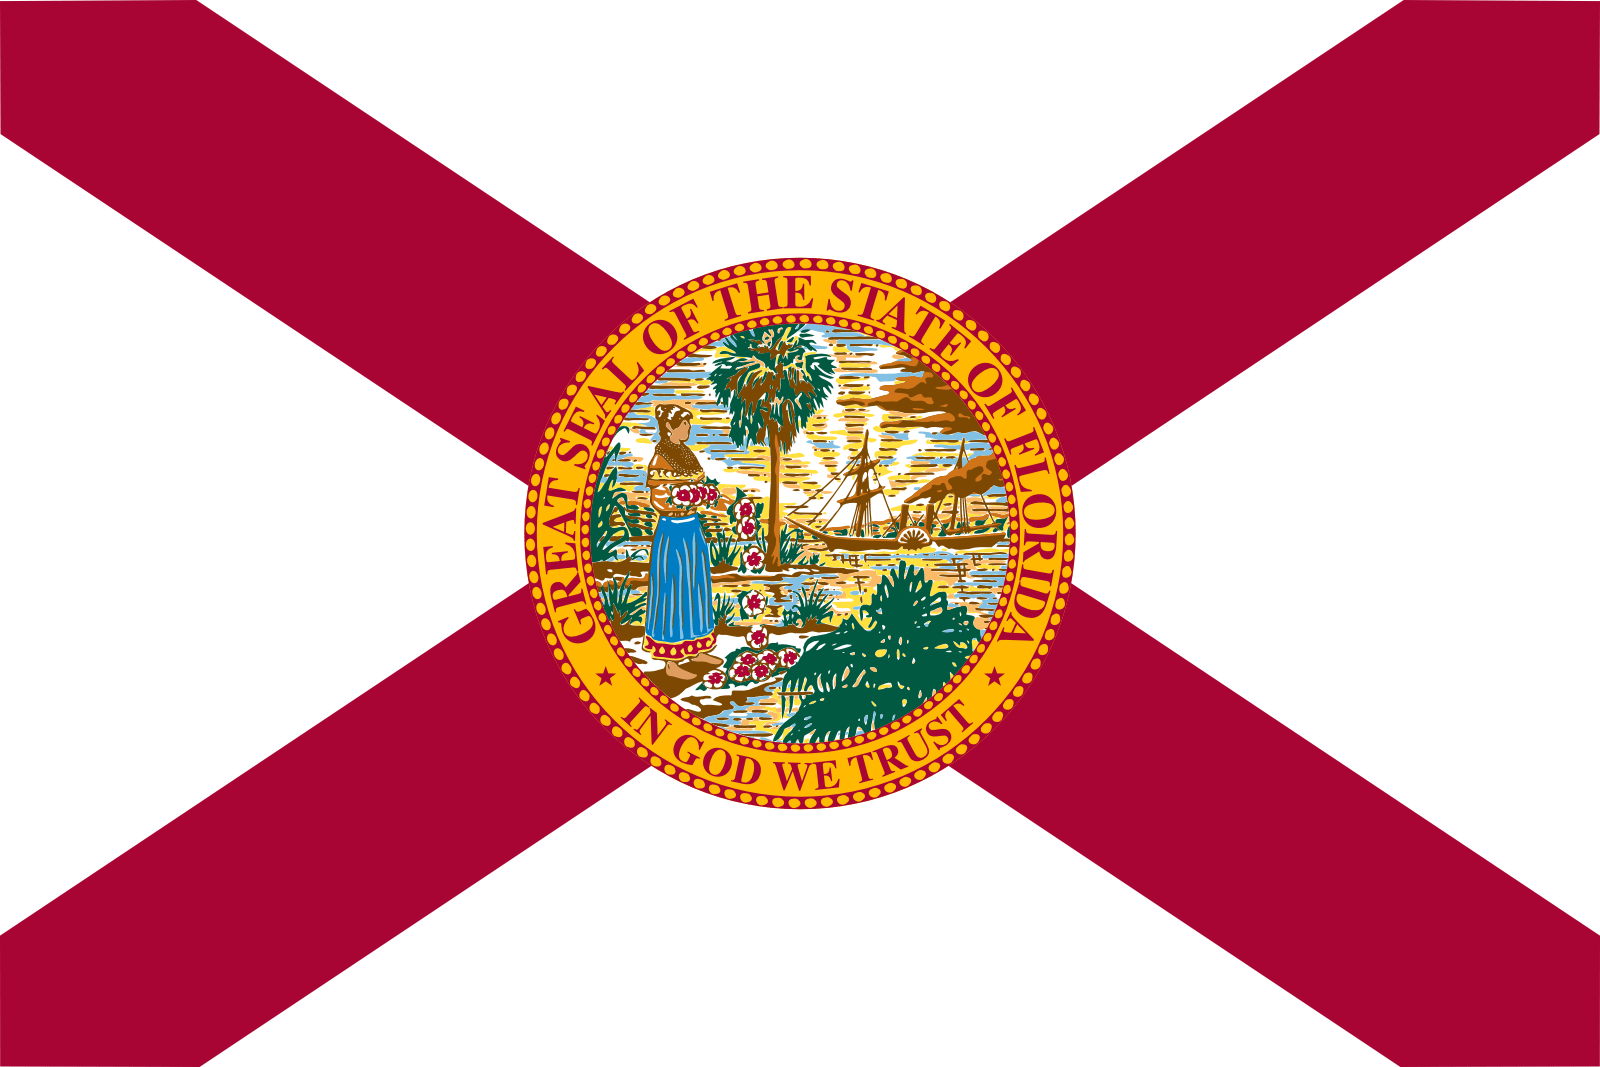 Who is the patron saint of Florida?